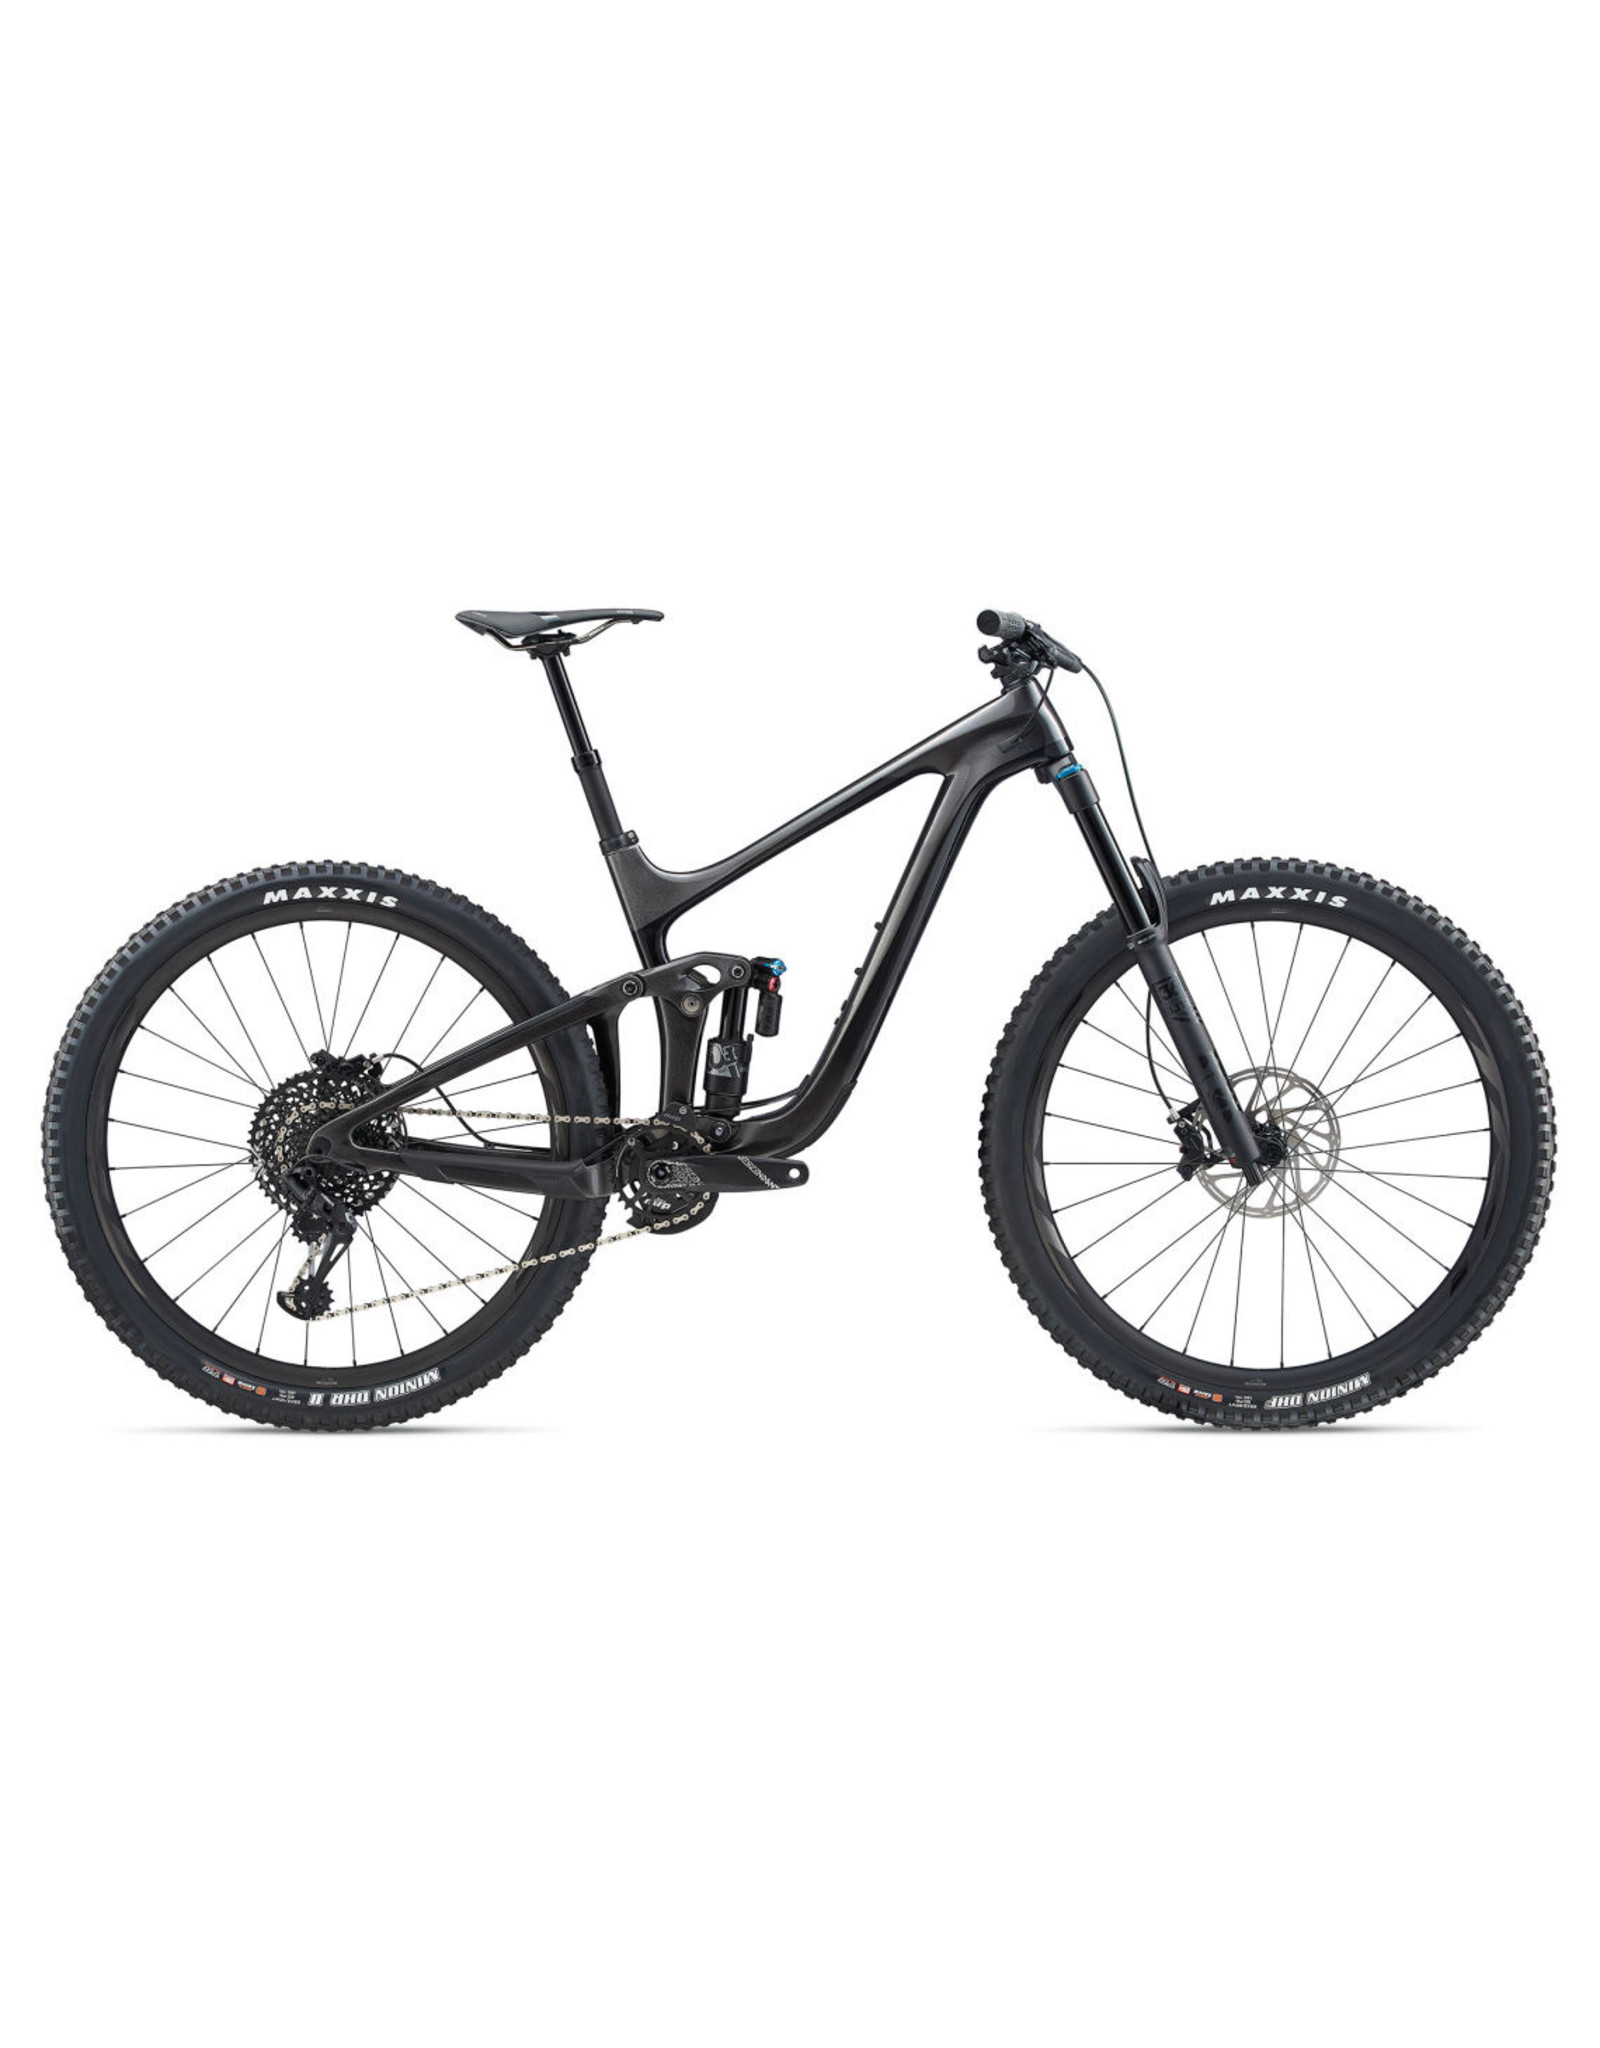 GIANT BICYCLES 2020 Reign Adv Pro 29 1